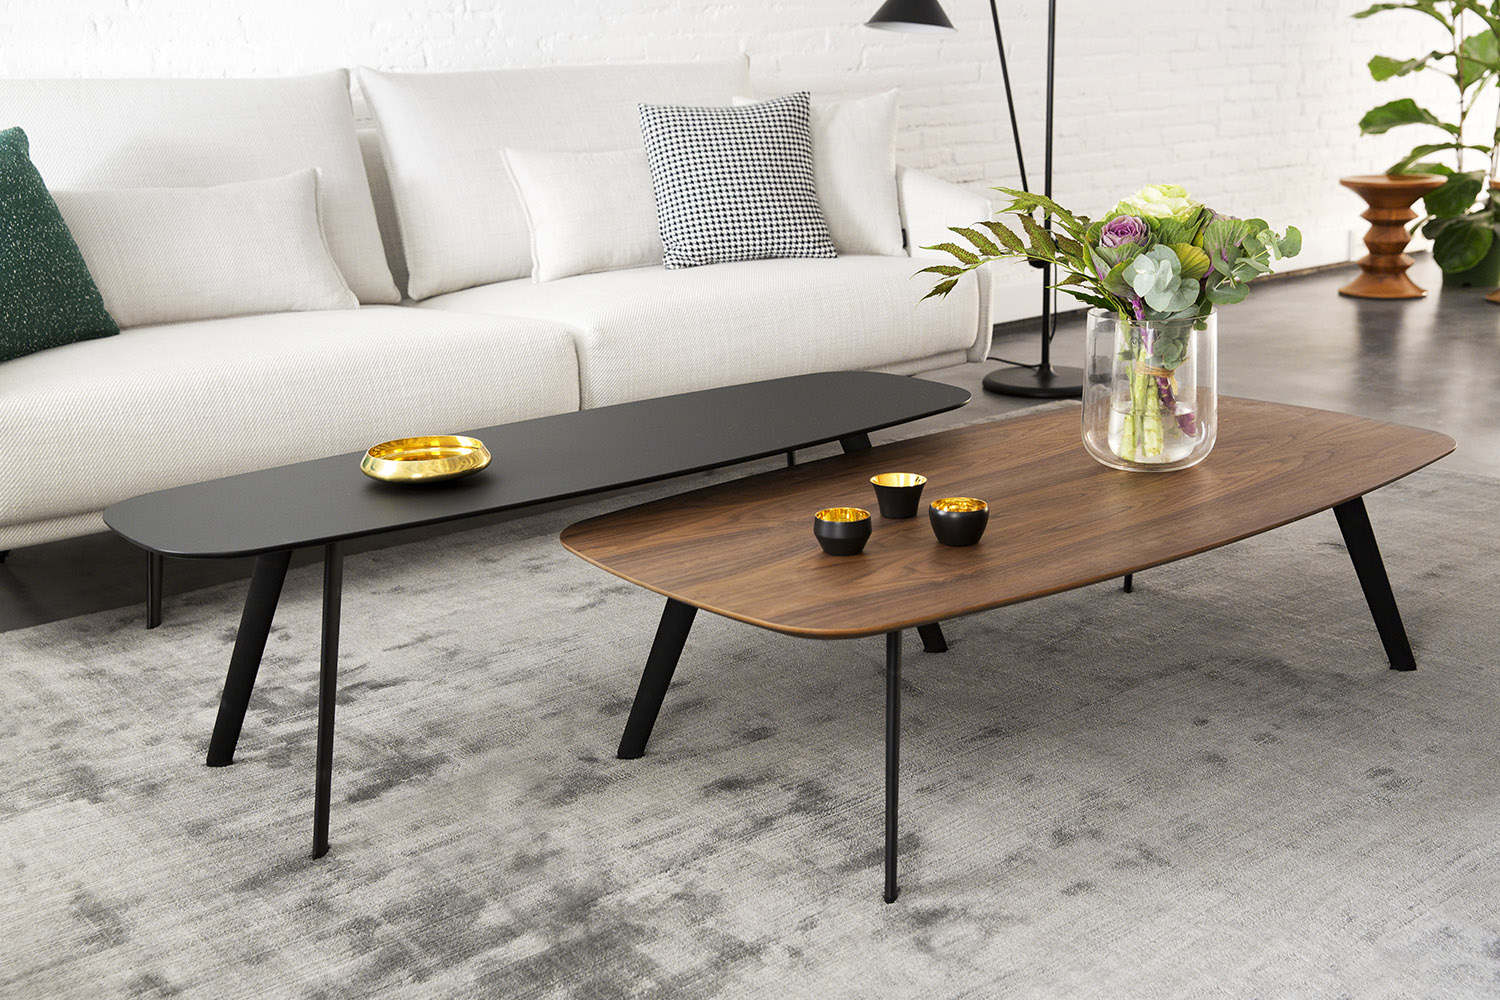 All The Solapa Table Options White Black Oak And Walnut